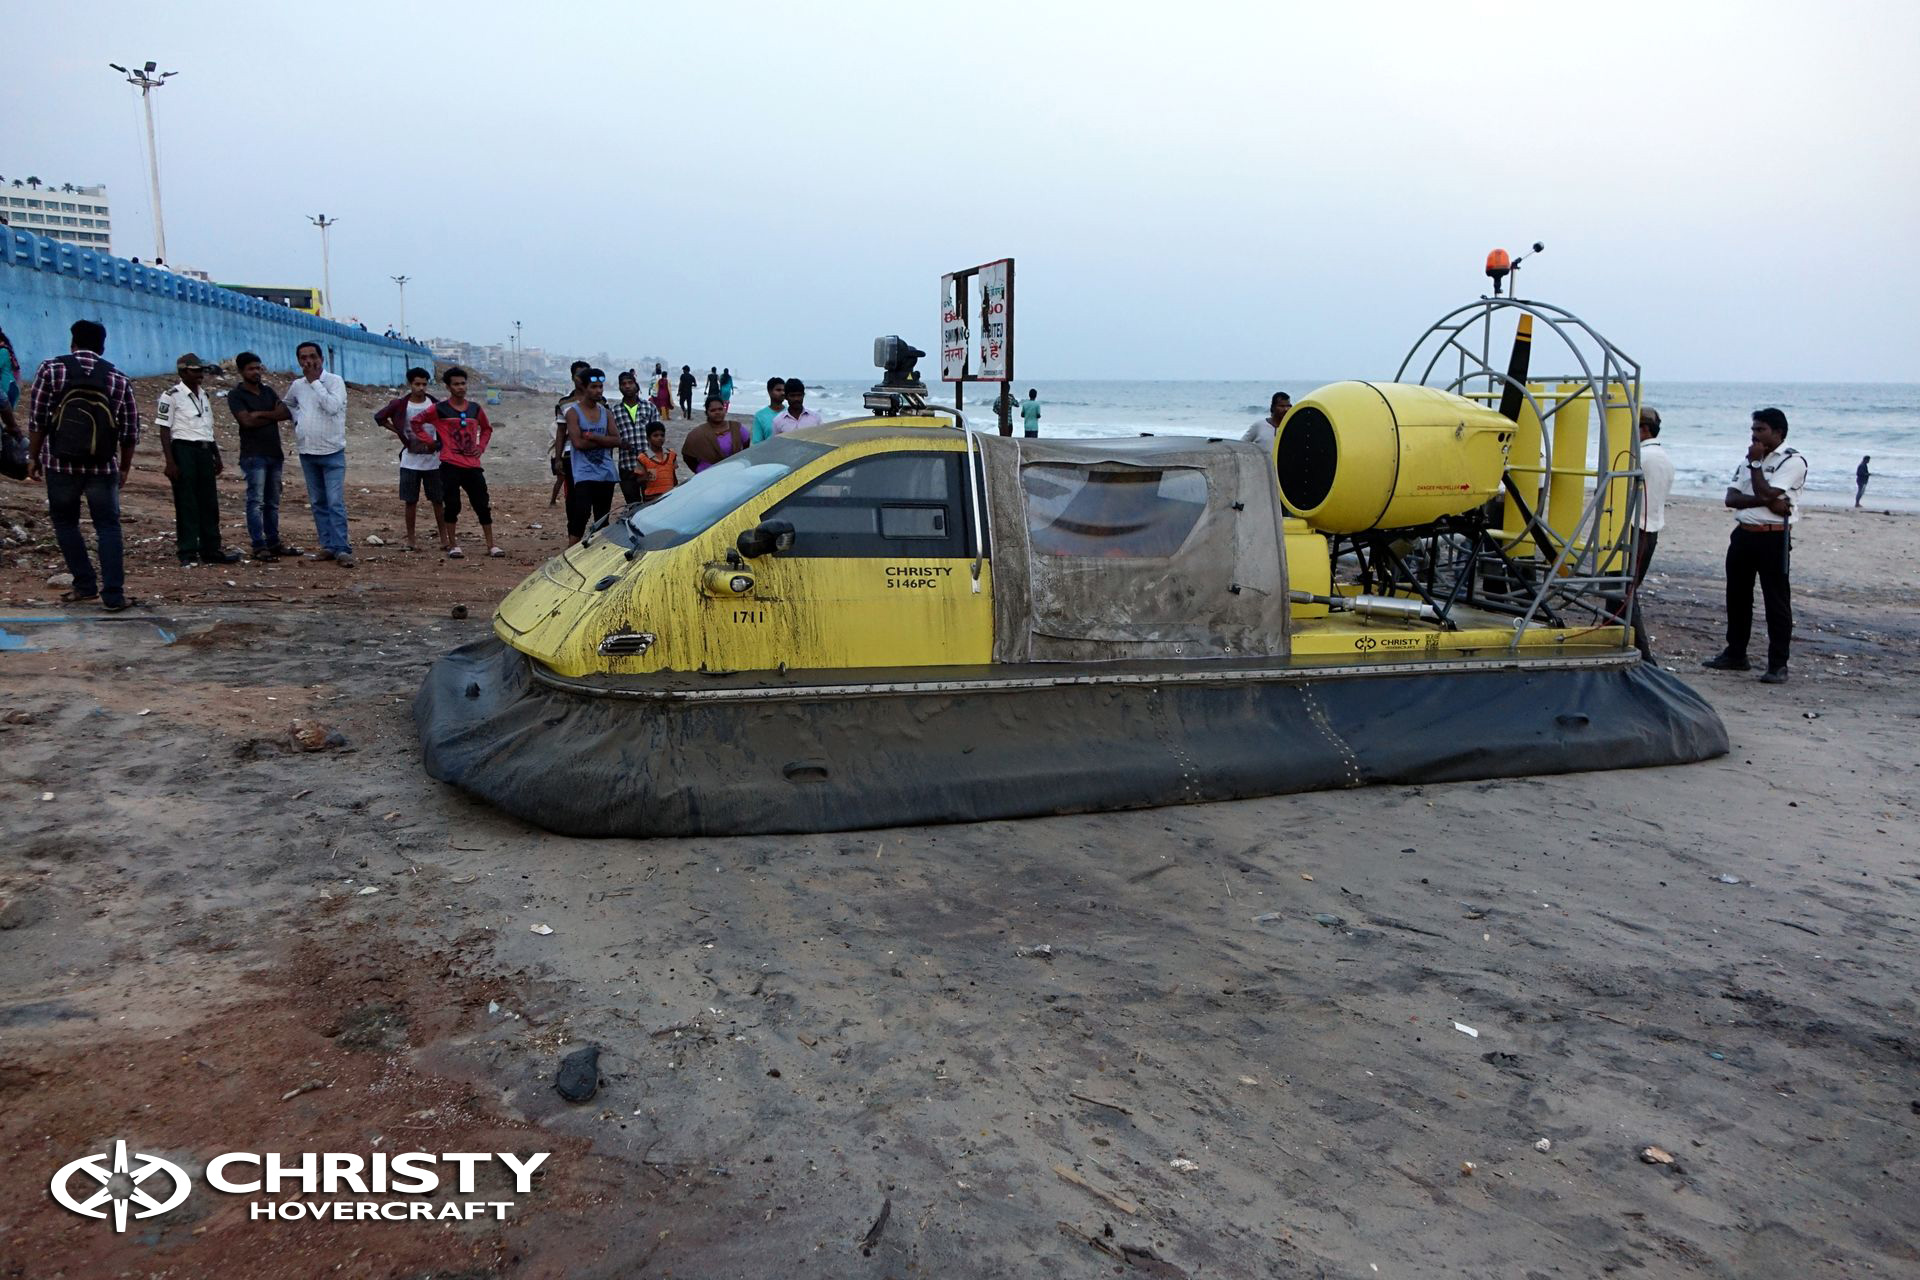 hovercraft-christy-5_7series-07.jpg | фото №50